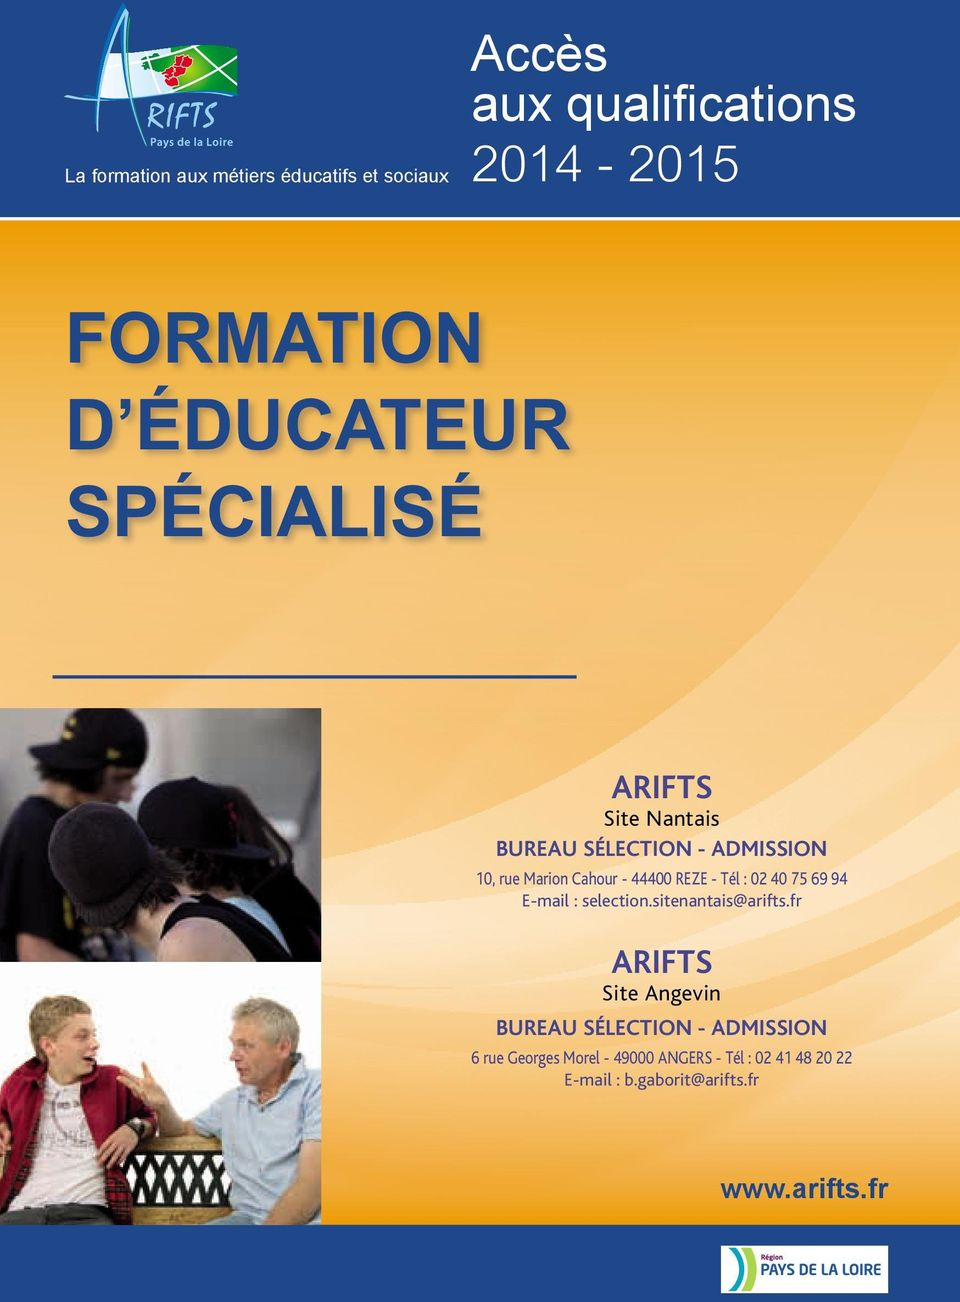 02 40 75 69 94 E-mail : selection.sitenantais@arifts.